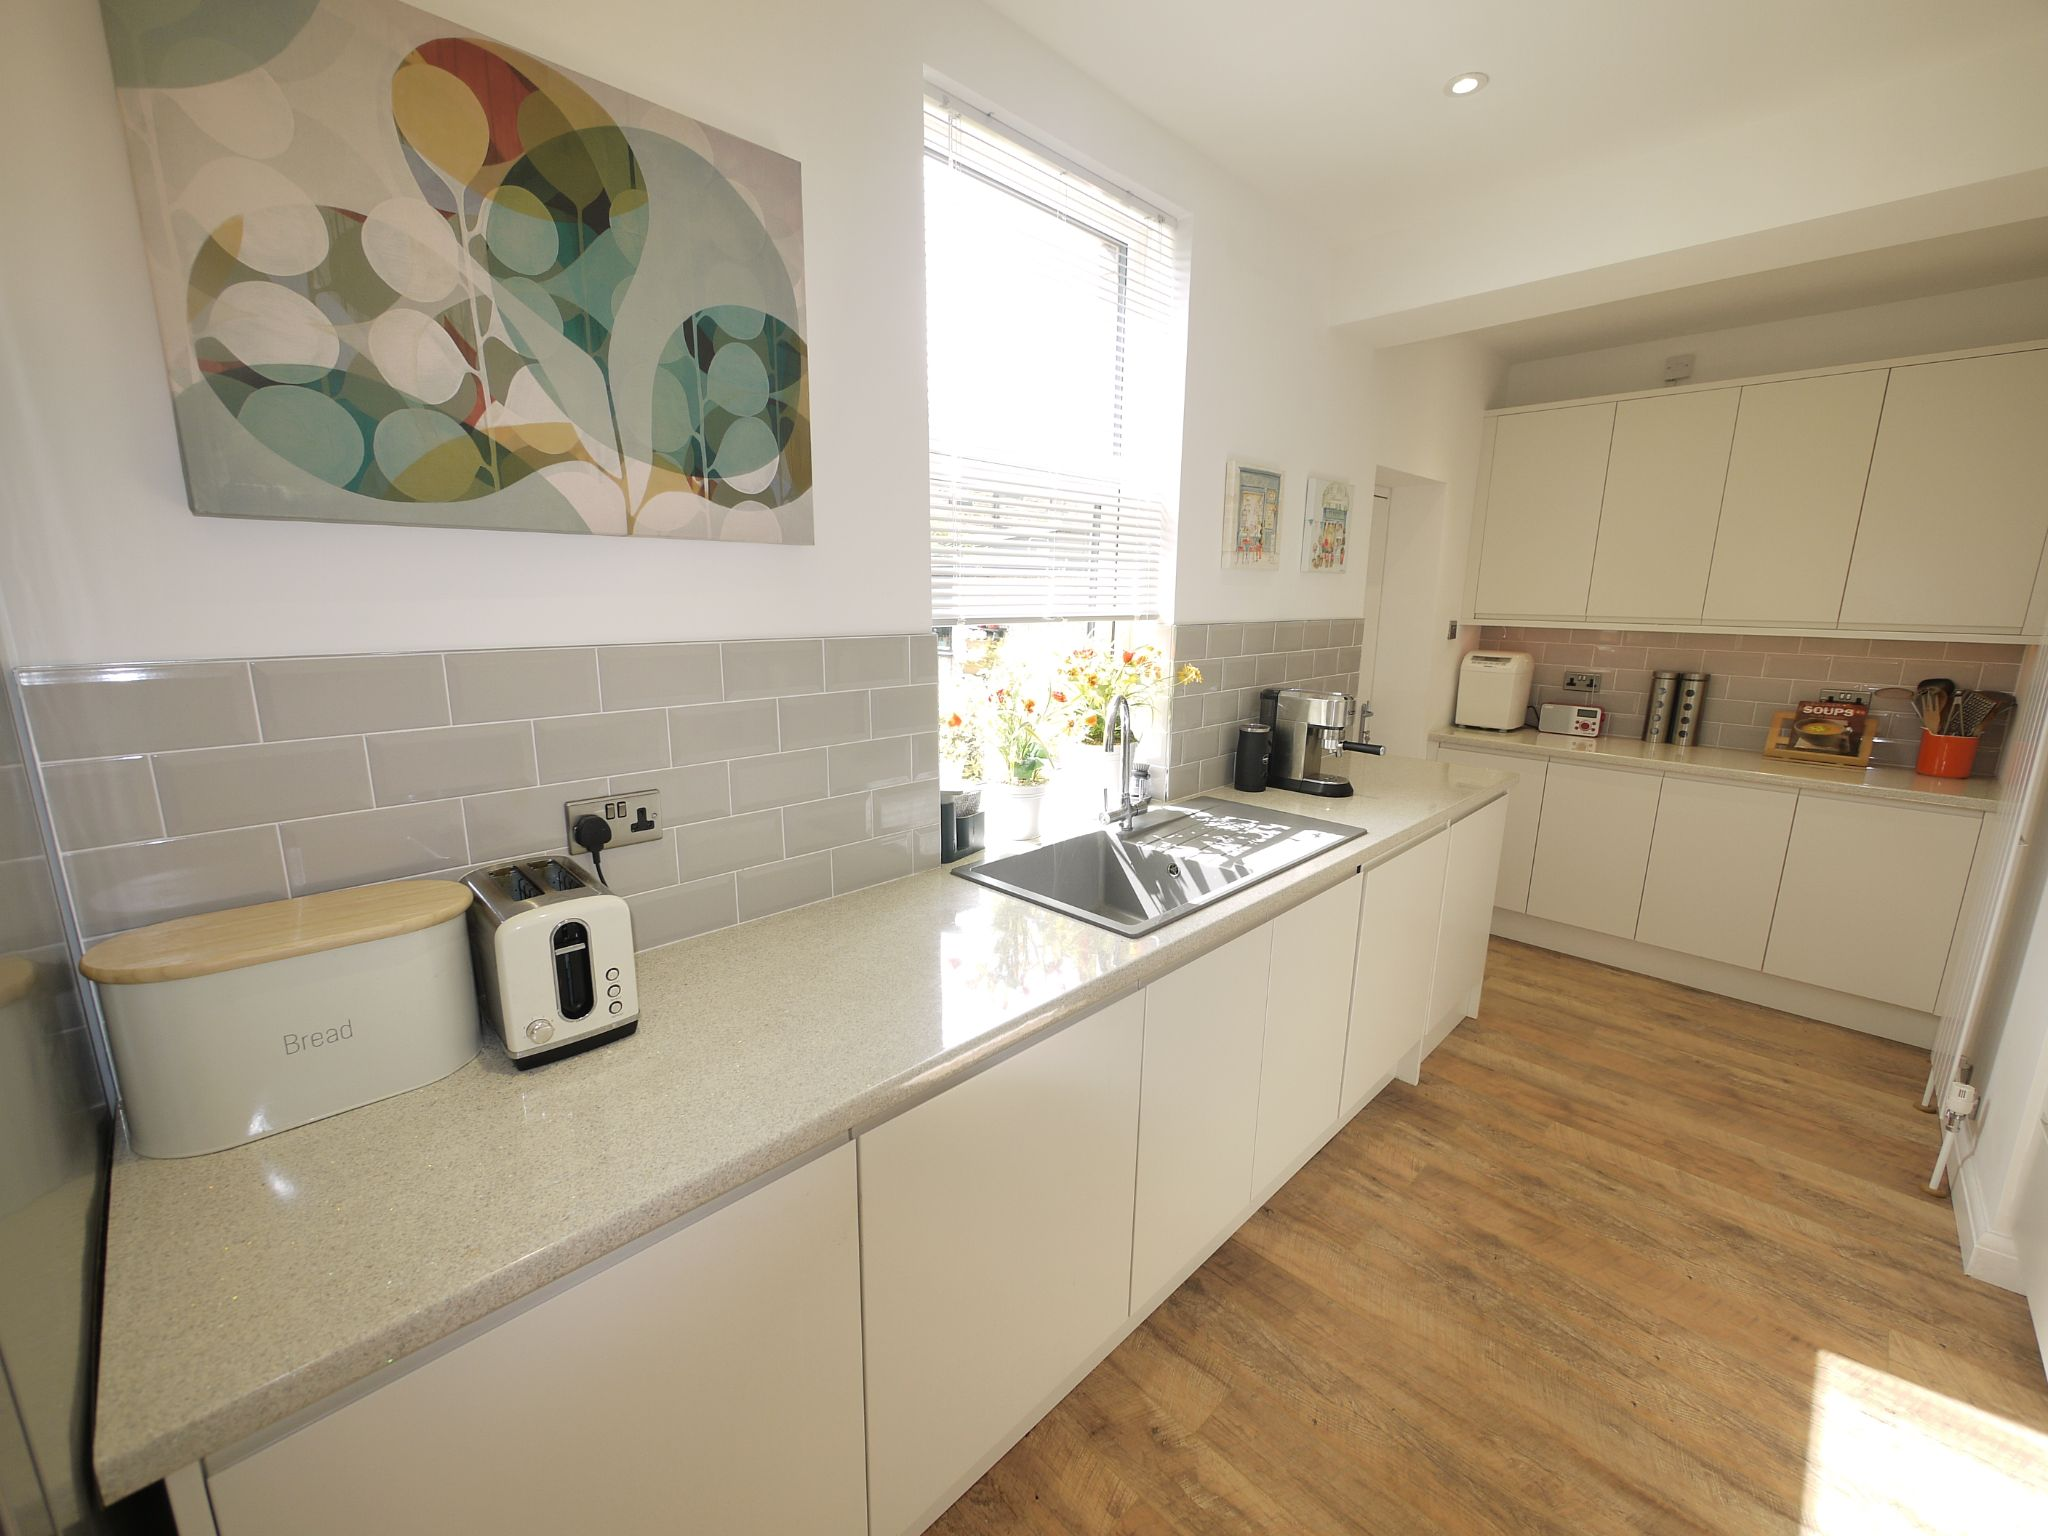 4 bedroom detached house For Sale in Halifax - Kitchen 2.